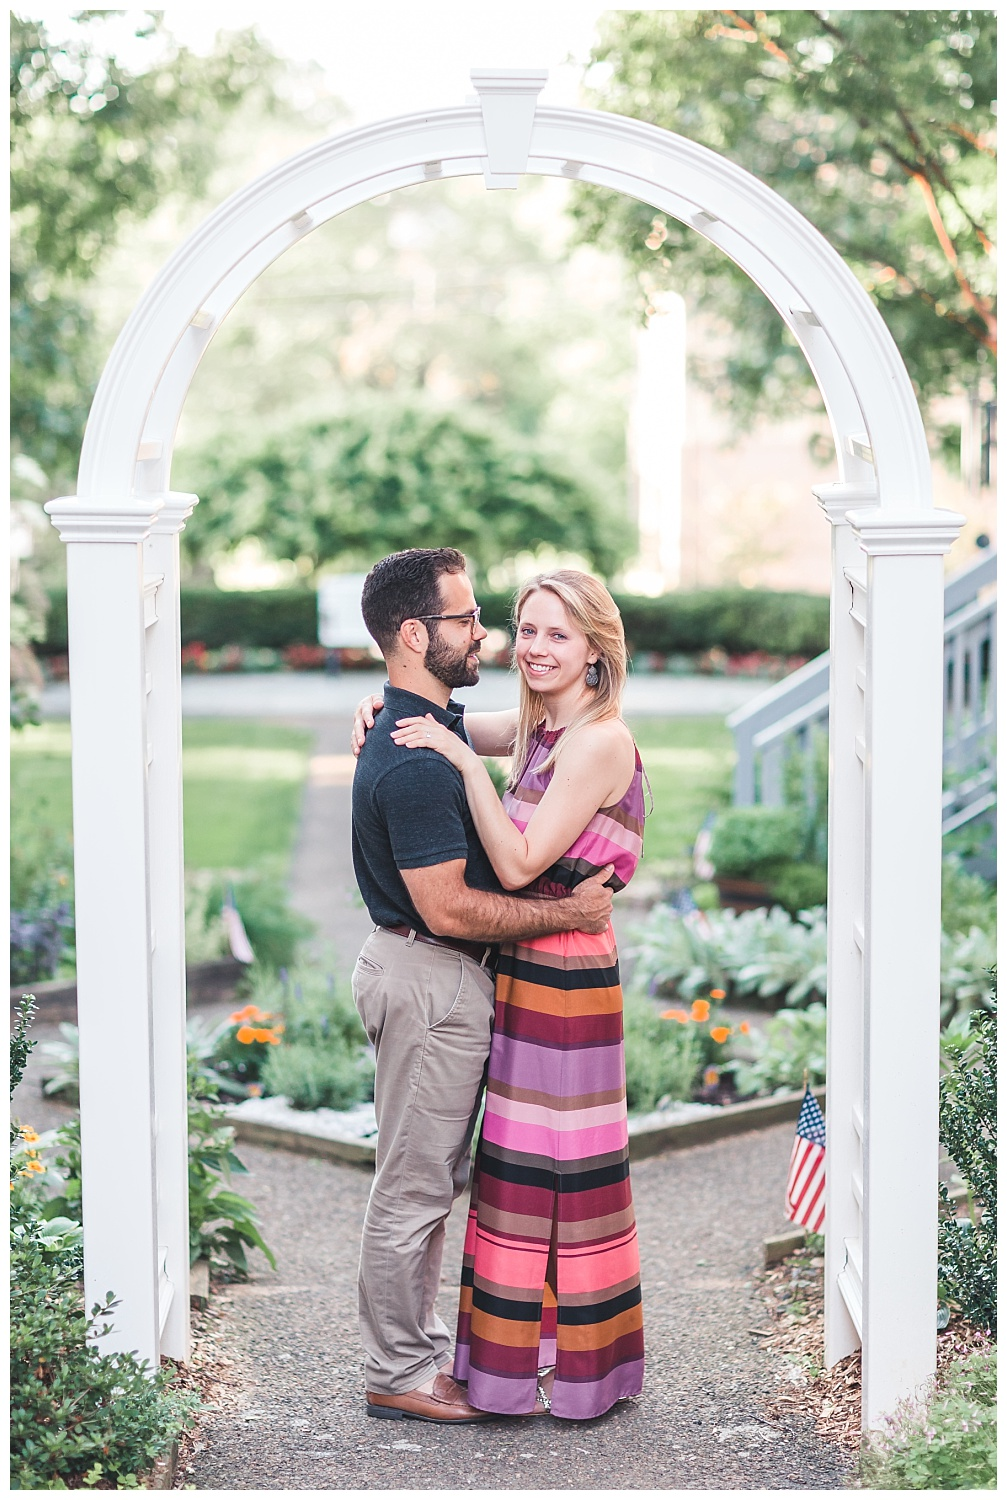 Lititz, PA Summer Engagement Session_0020.jpg